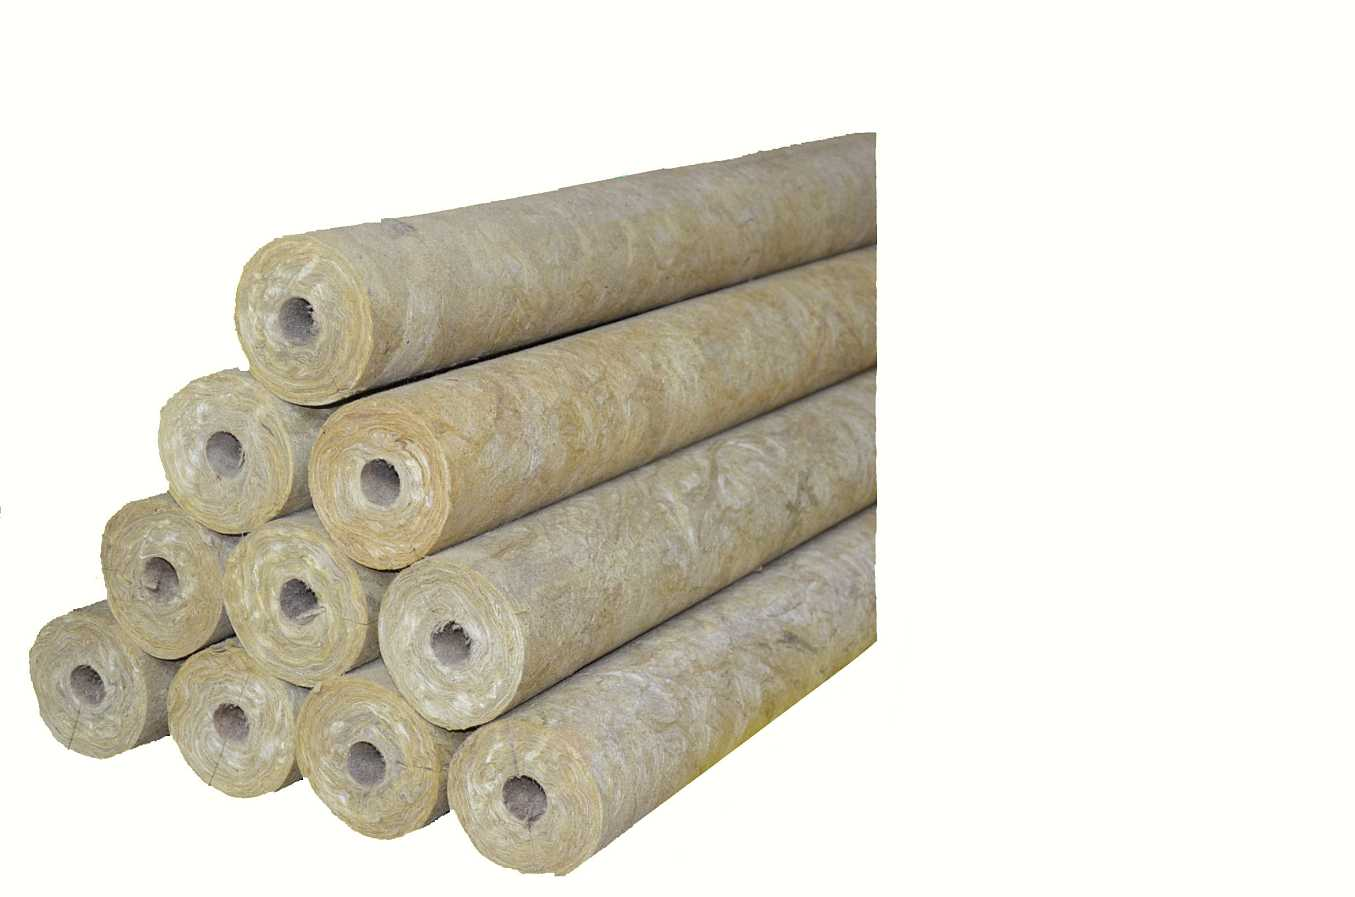 high quality sound attenuation insulation glass wool acoustic property for ceilings in ships